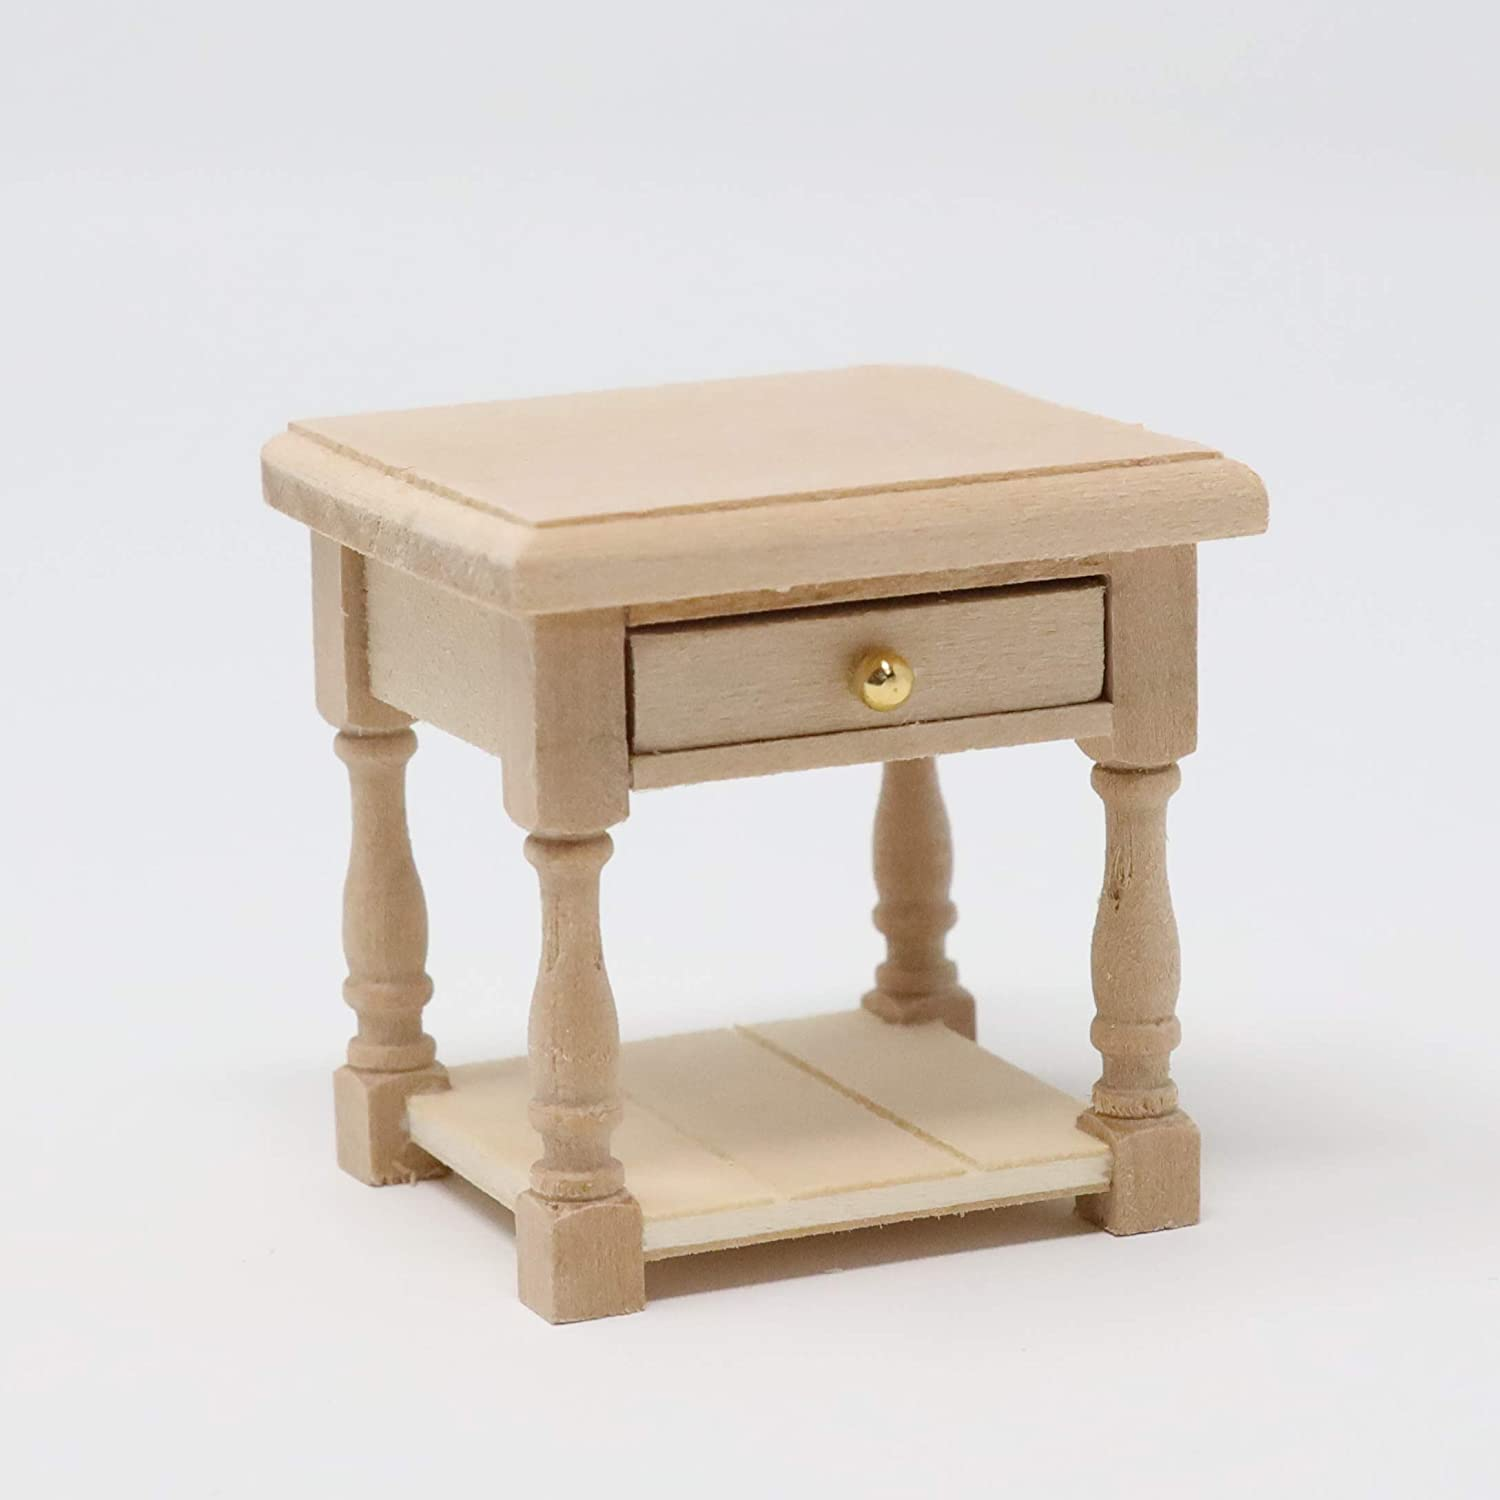 Dollhouse Miniature Unfinished Nightstand Side Table Set of 2 1:12 Scale